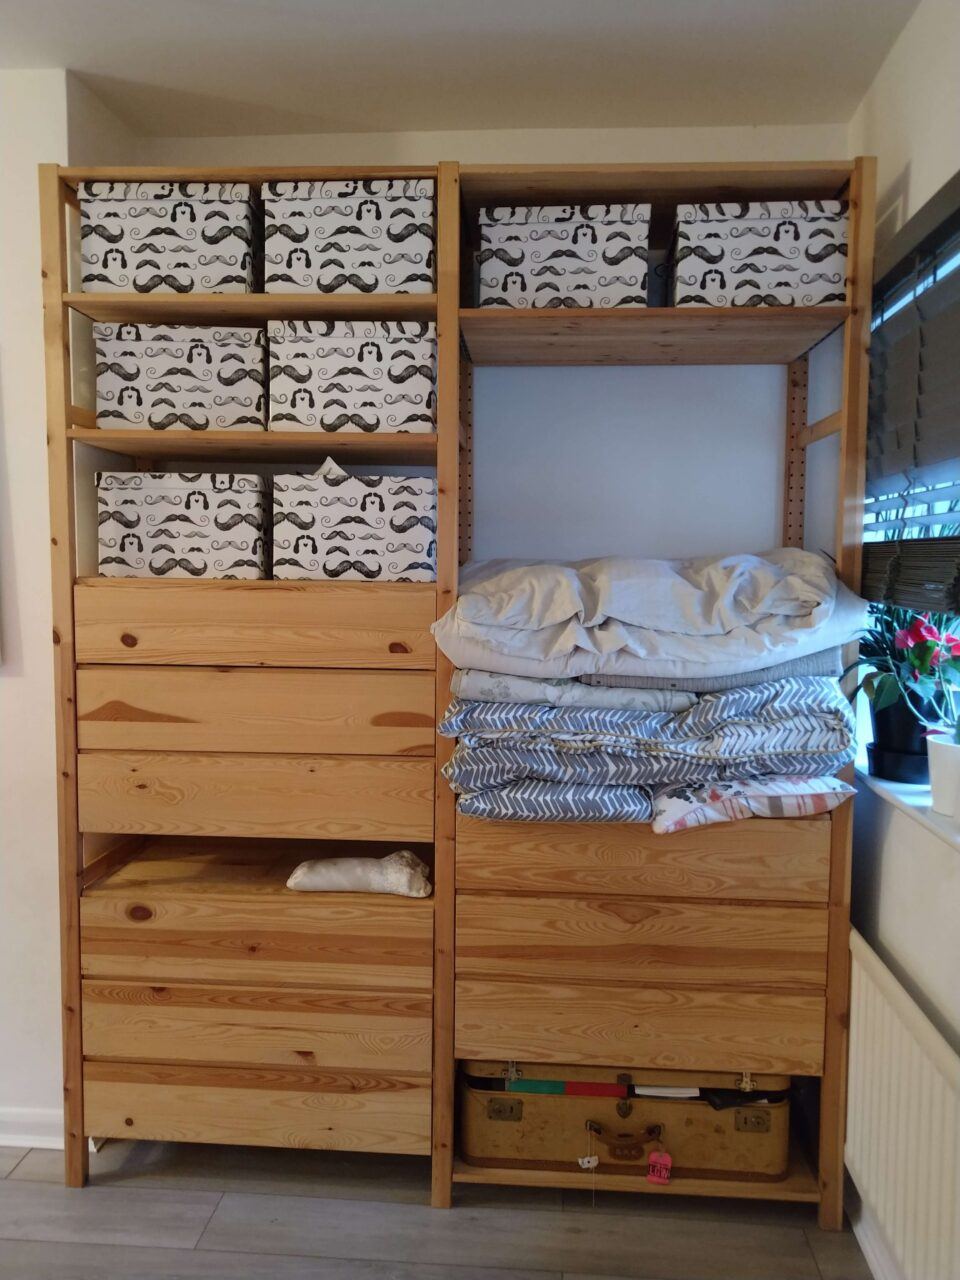 A large wooden shelving unit contains drawers, boxed and folded quilts.